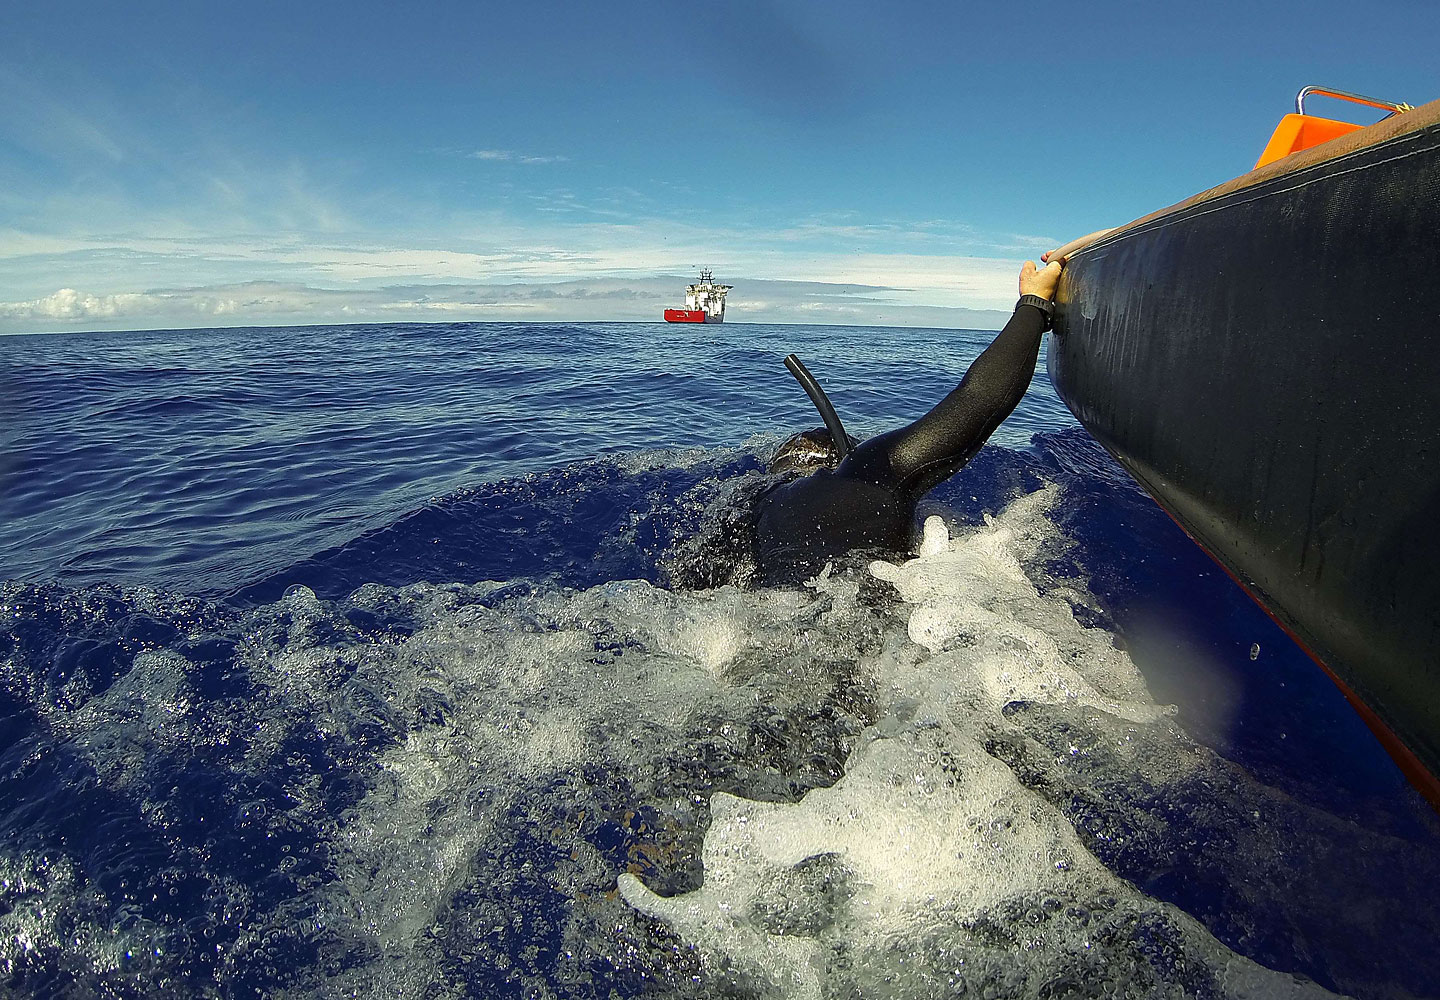 A handout photo taken on April 7, 2014 and released on April 8 by Australian Defence shows Able Seaman Clearance Diver Michael Arnold being towed by Australian Defence Vessel Ocean Shield's fast response craft as he scans the water for debris from missing Malaysia Airlines Flight MH 370 in the southern Indian Ocean.